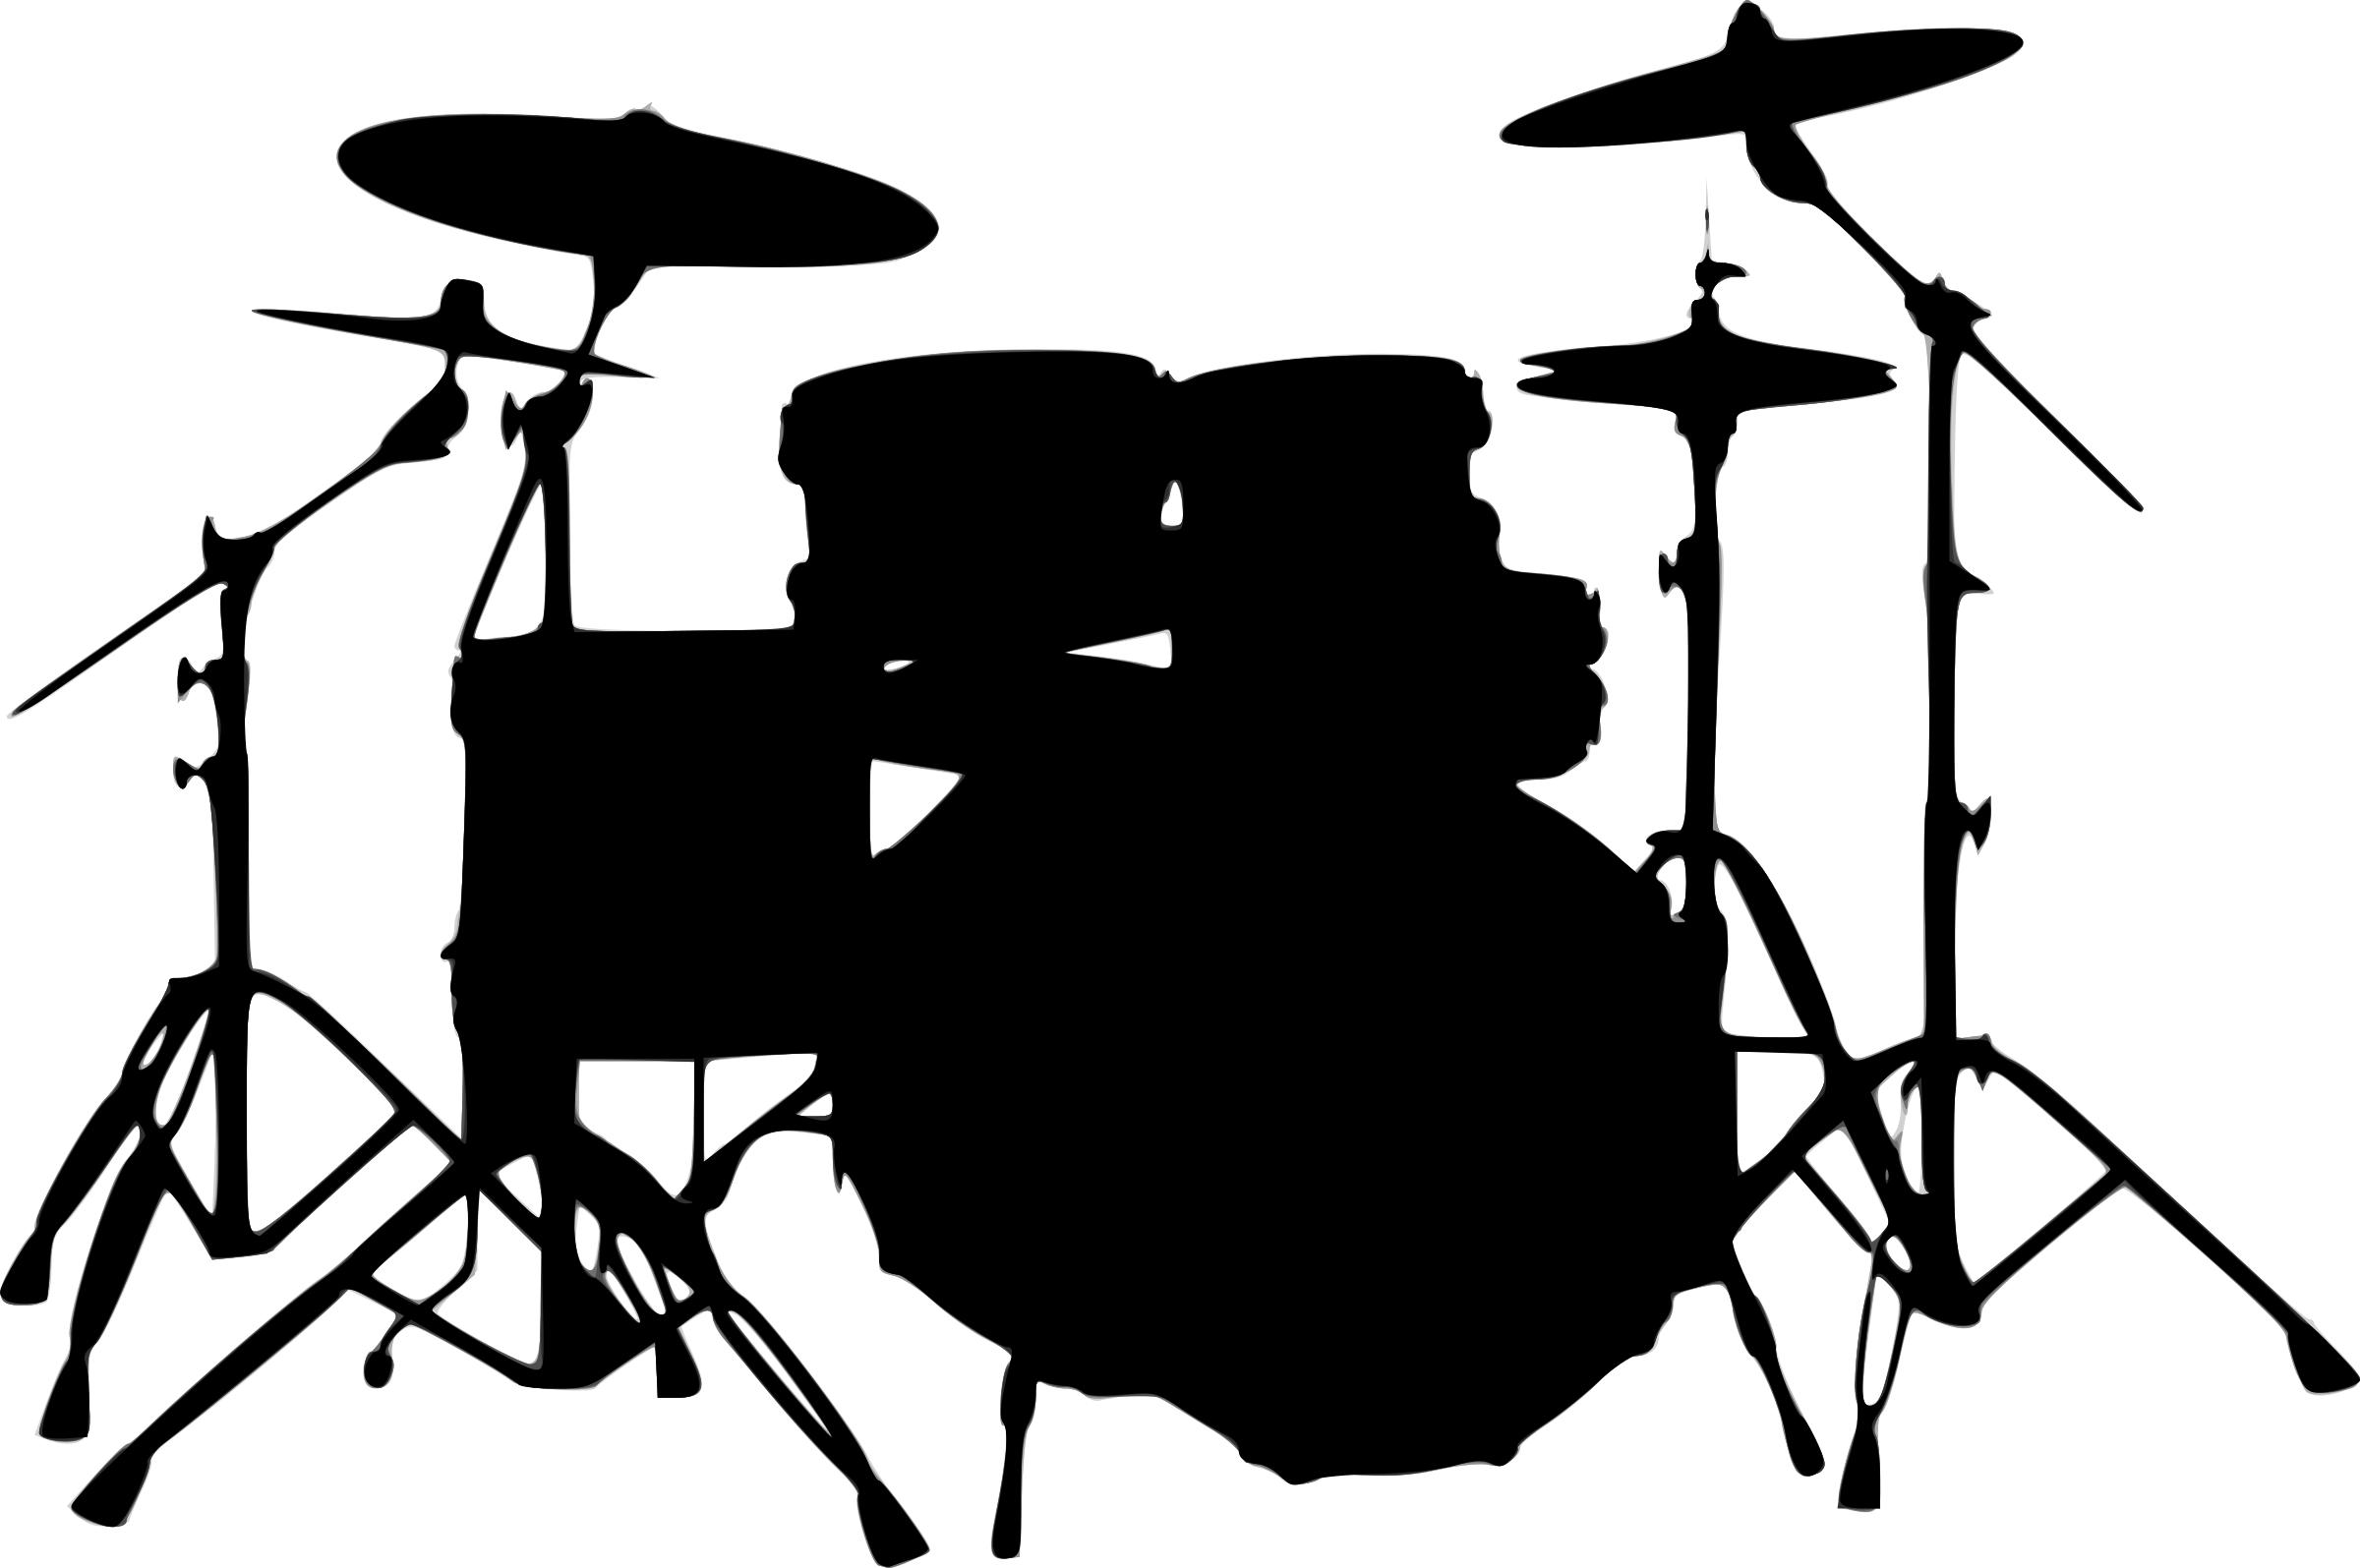 2400x1595 Silhouette Musique 01 Icons Png